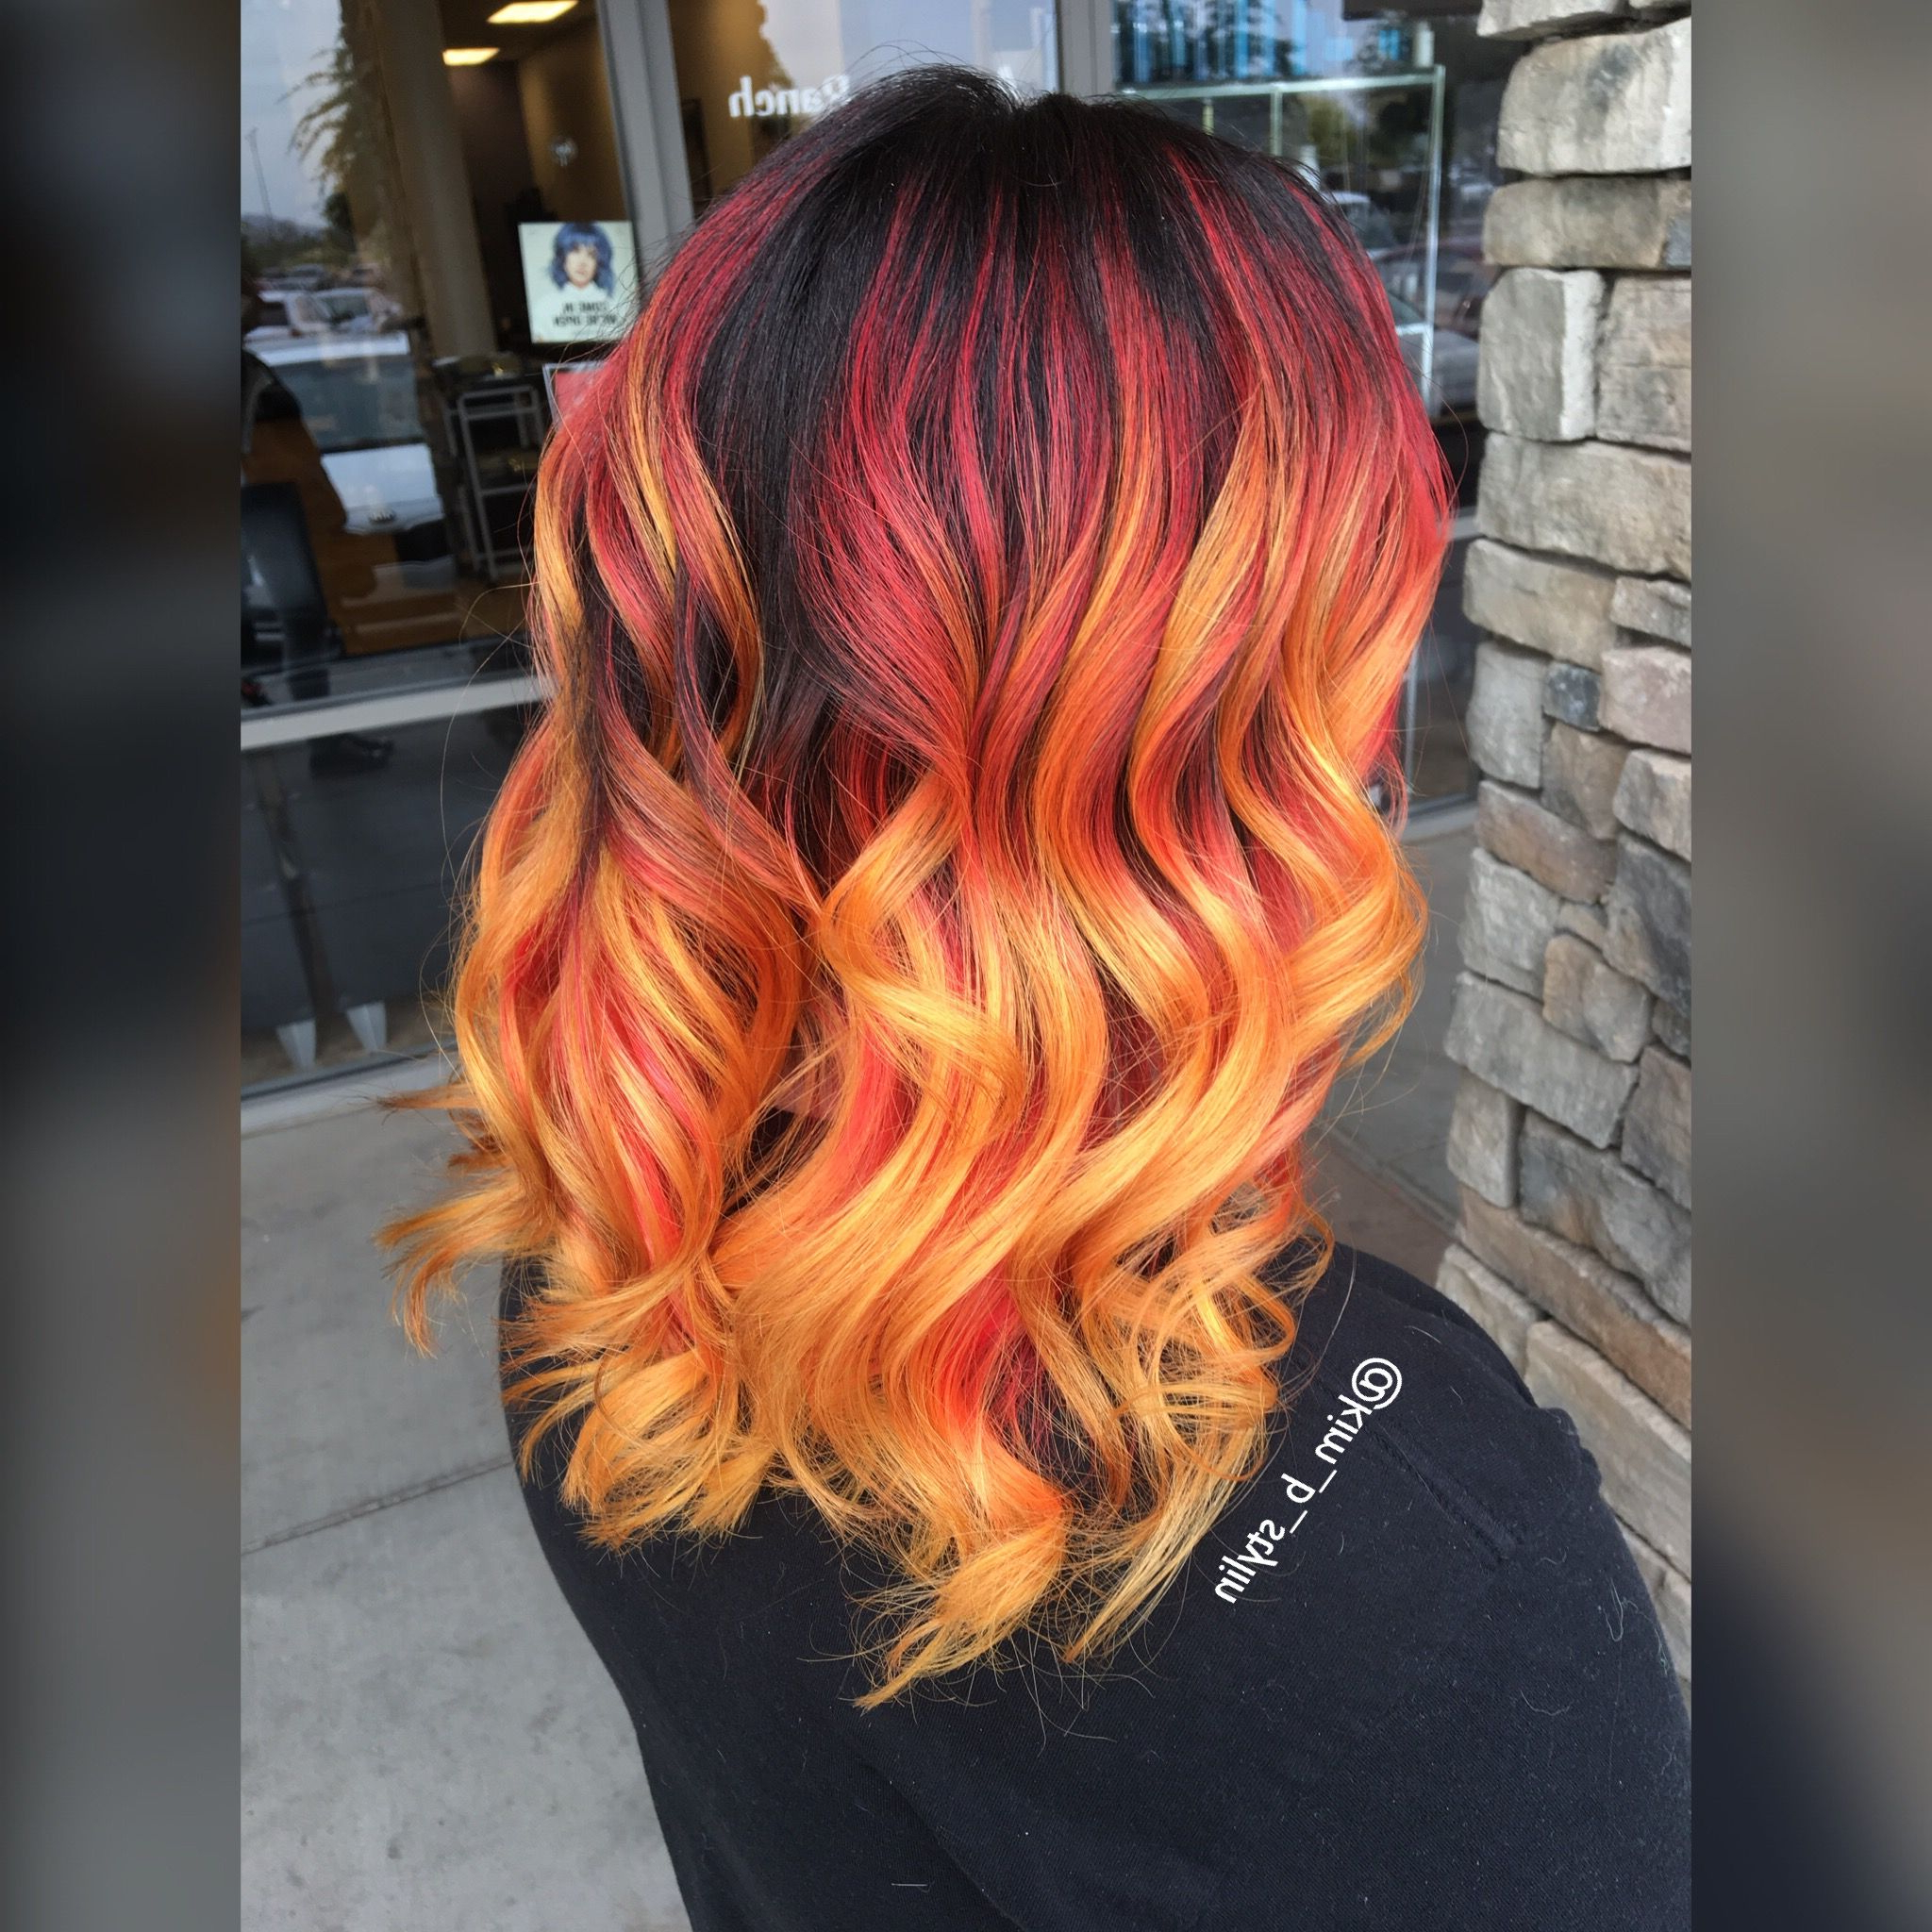 Most Popular Red, Orange And Yellow Half Updo Hairstyles Intended For Fire Balayage Ombré With Red Yellow And Orange Melted (View 2 of 20)